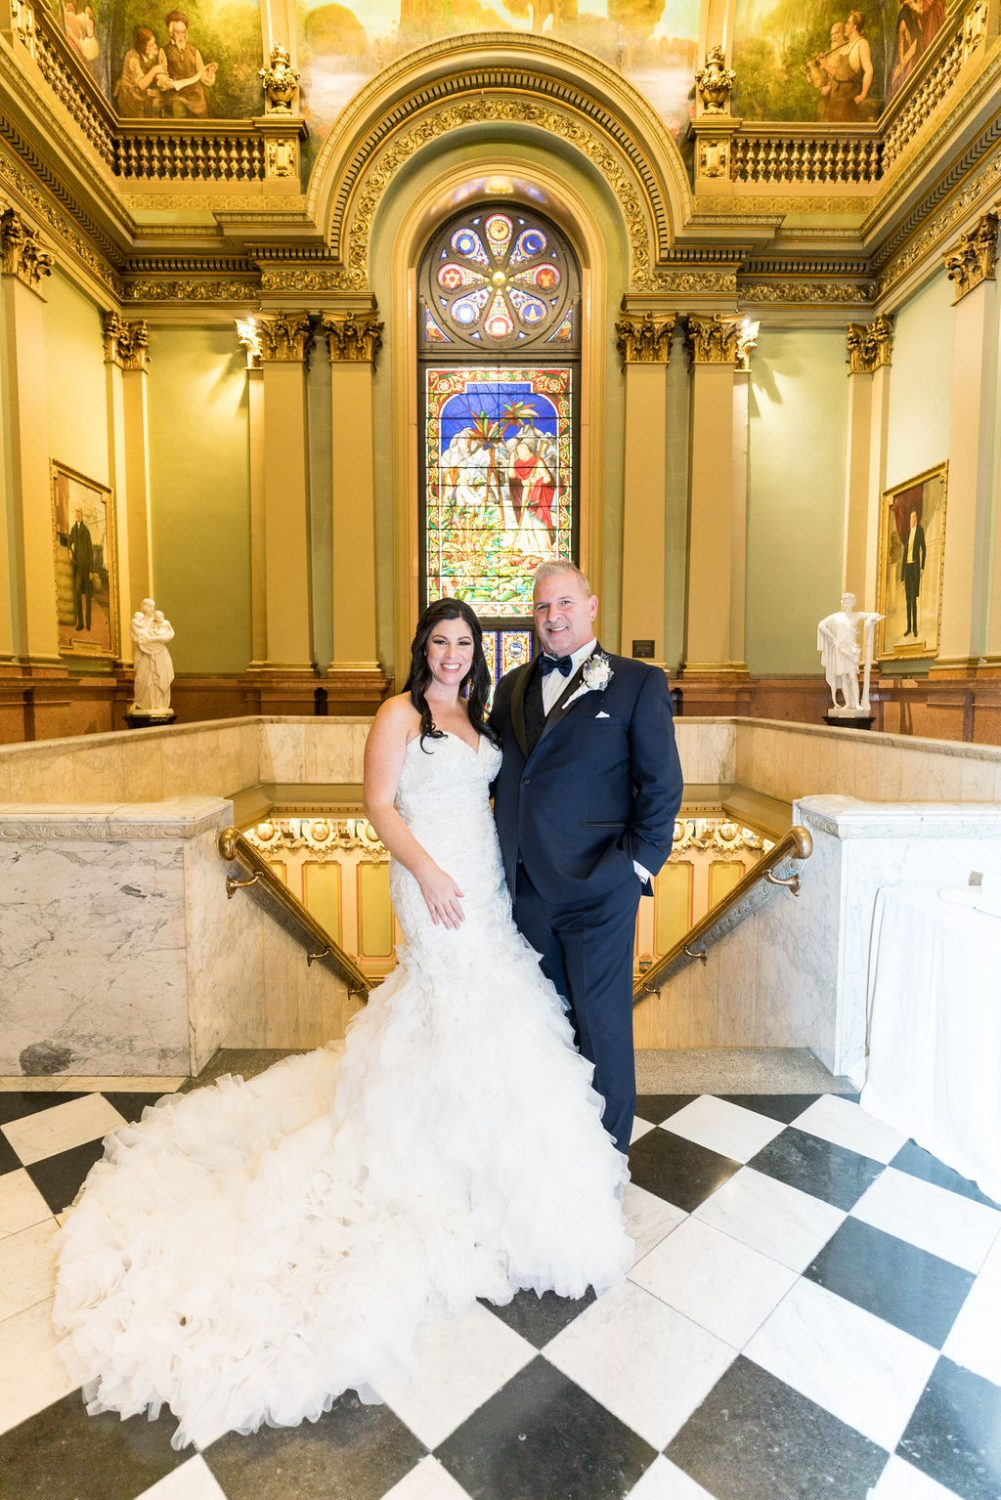 Stunning bride and groom pic One North Broad Wedding